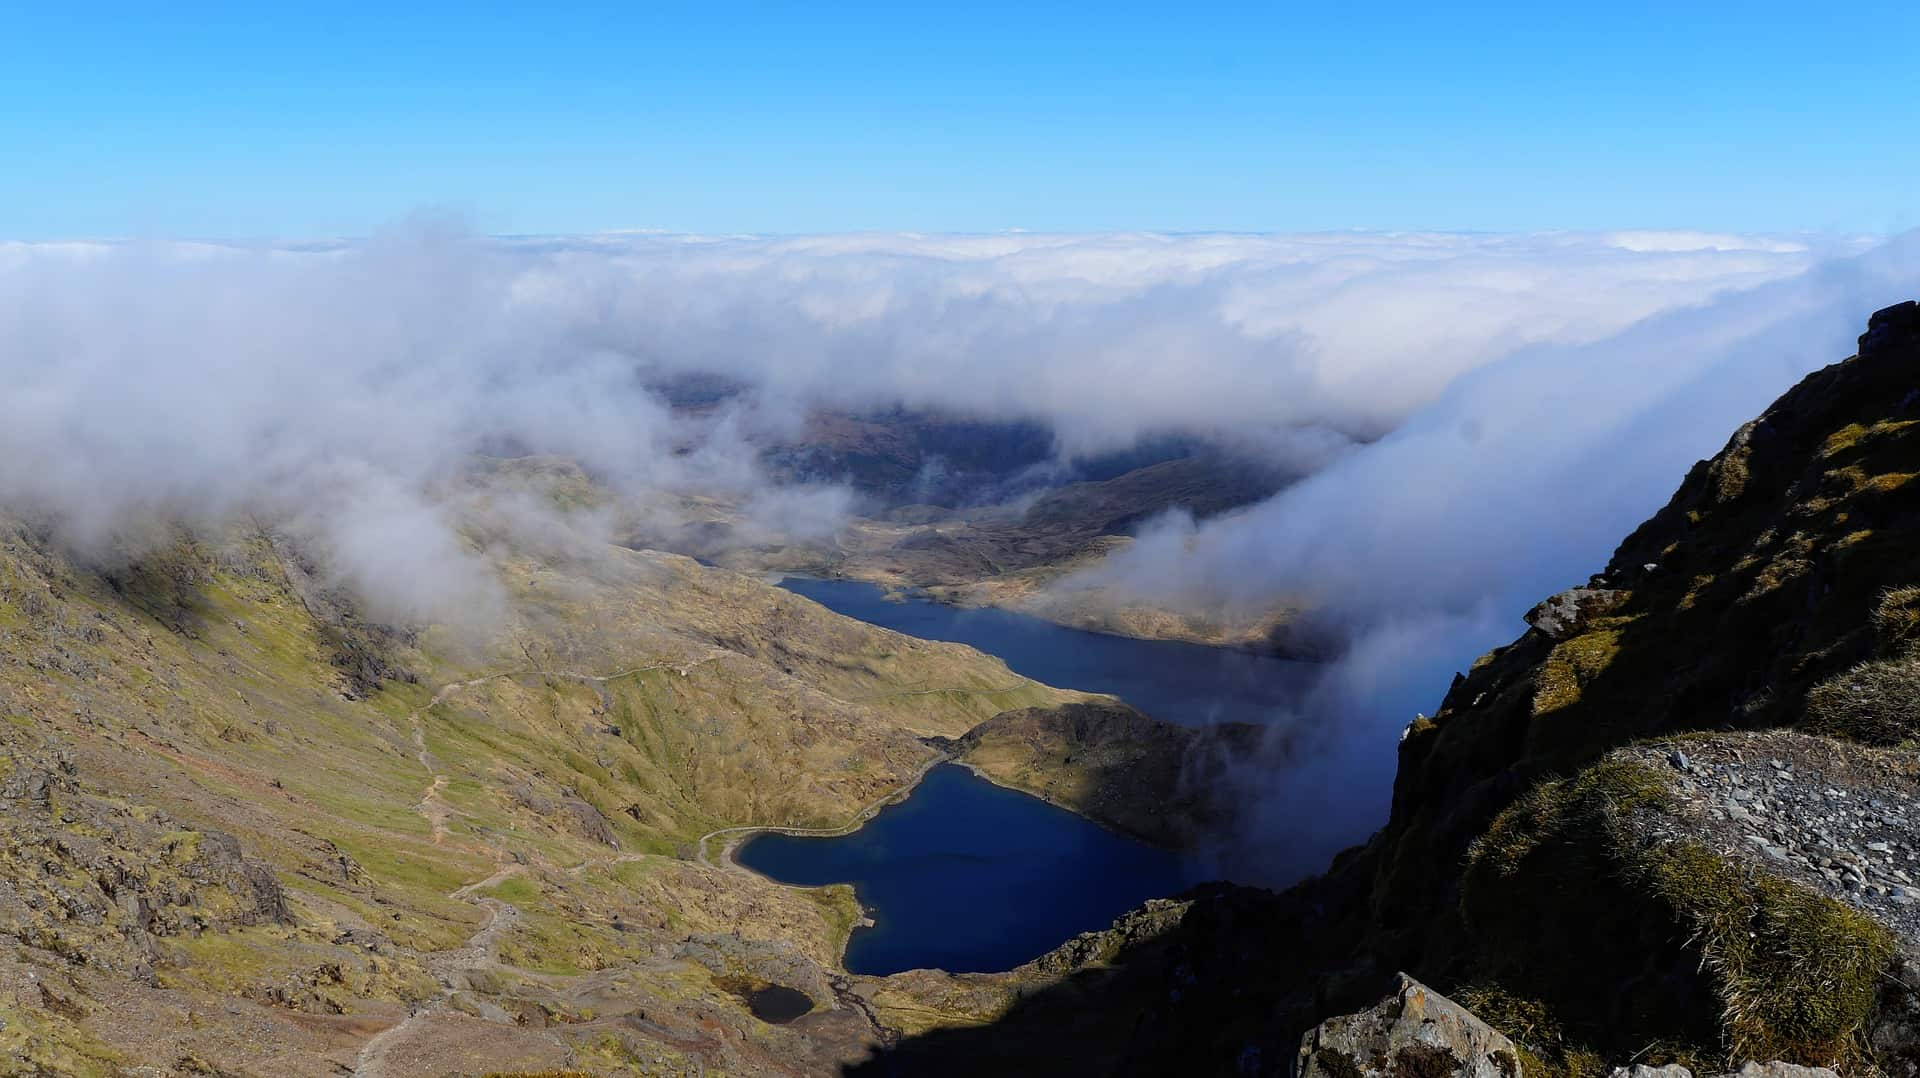 Road trip Wales itinerary - Mount Snowdon landscape with clouds